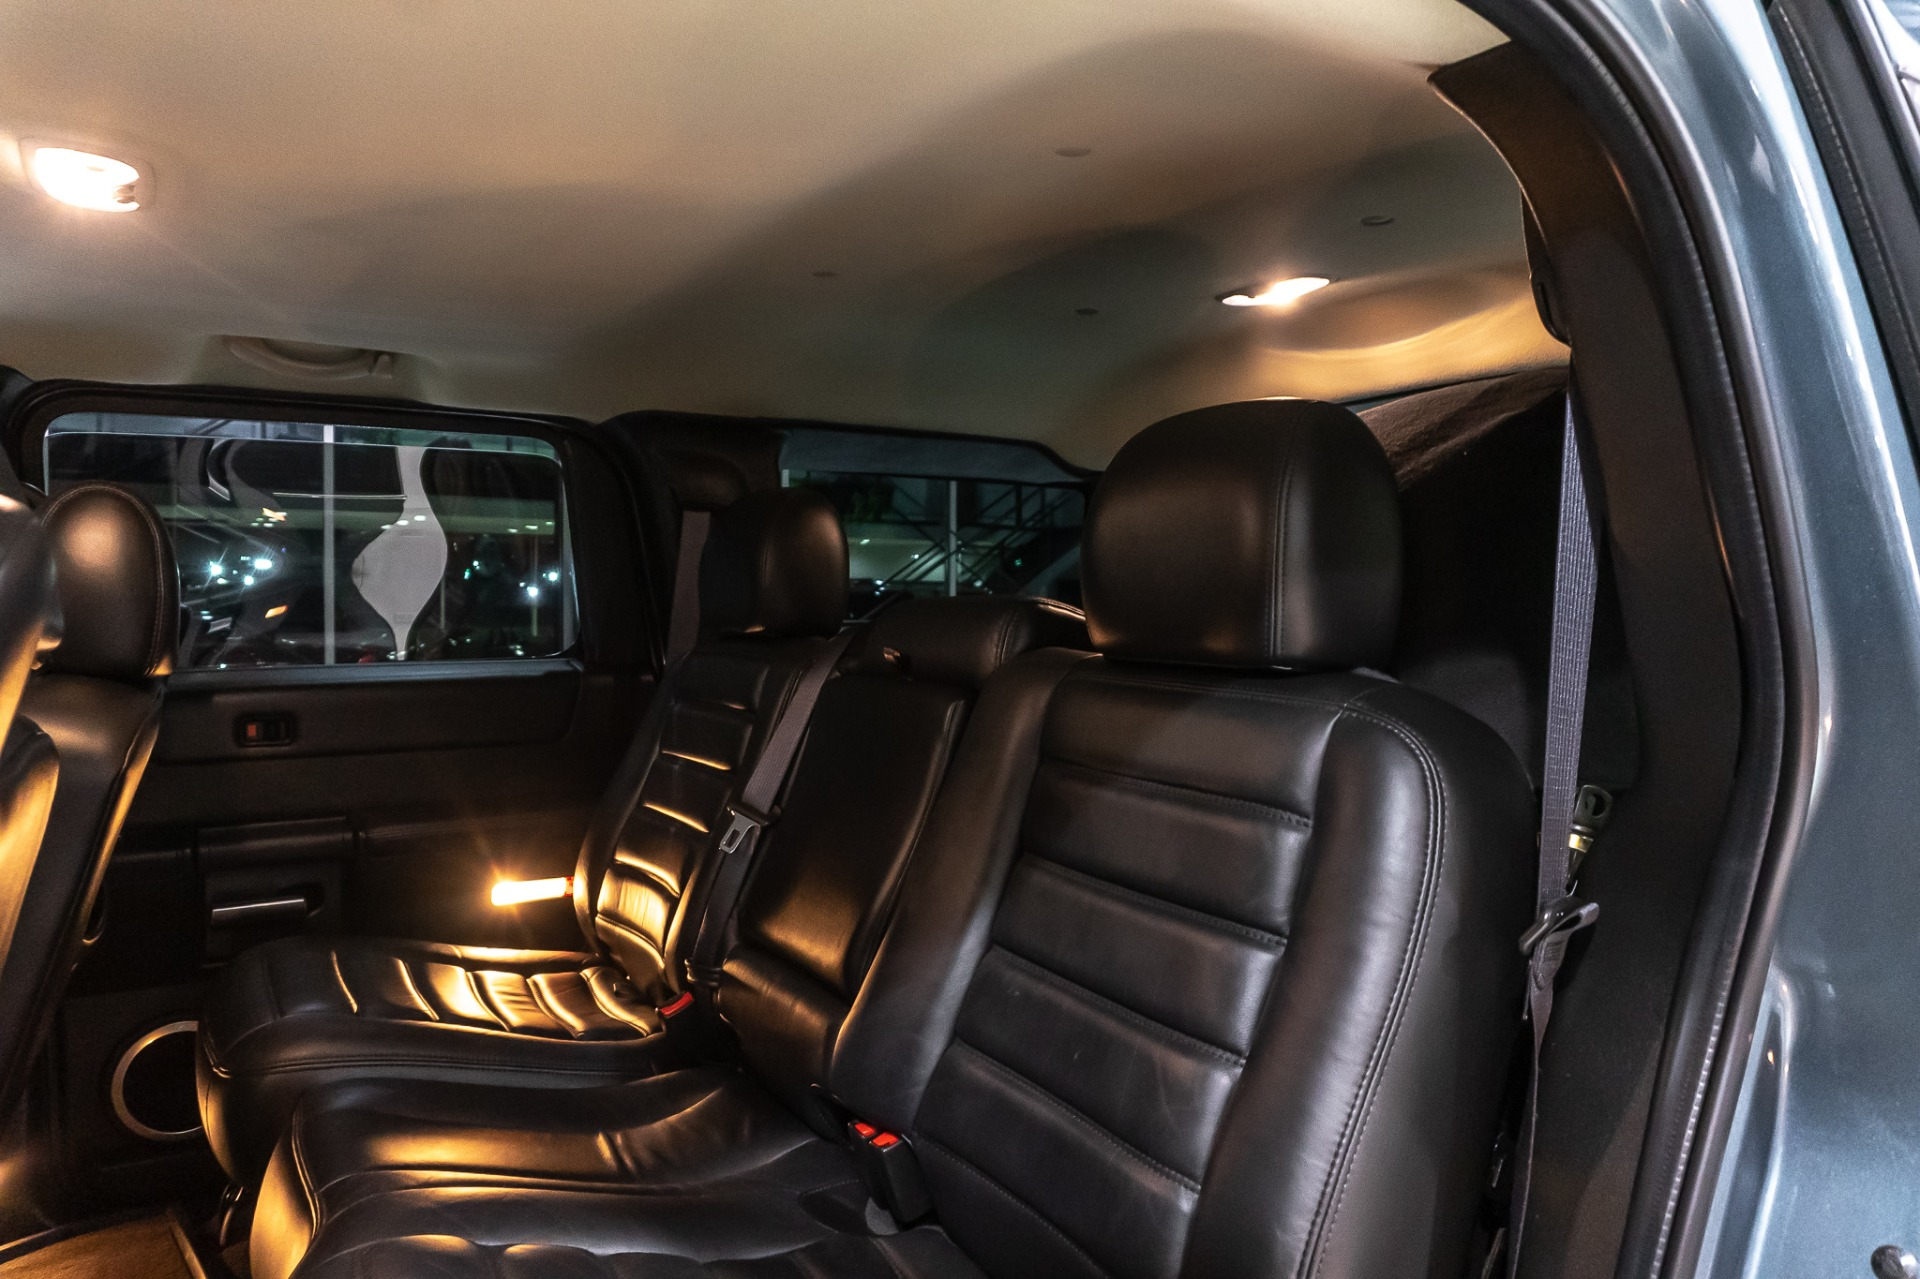 Used-2005-HUMMER-H2-SUV-RARE-STEALTH-GRAY-UPGRADES-VERY-CLEAN